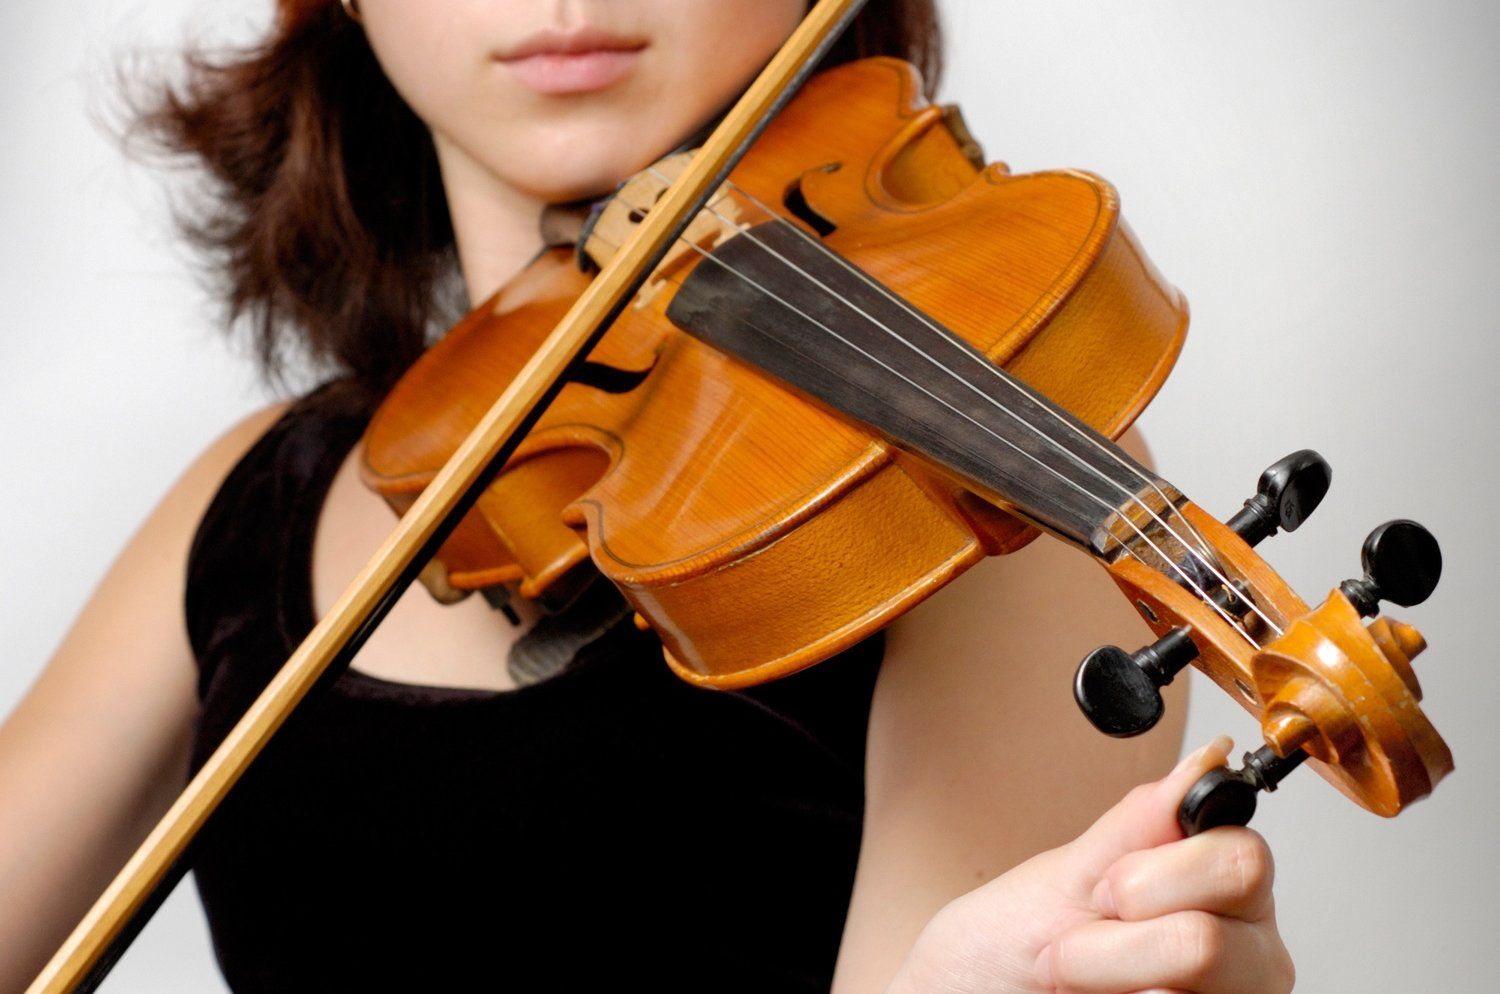 Article Learn Standard Tunings for Violins, Violas and